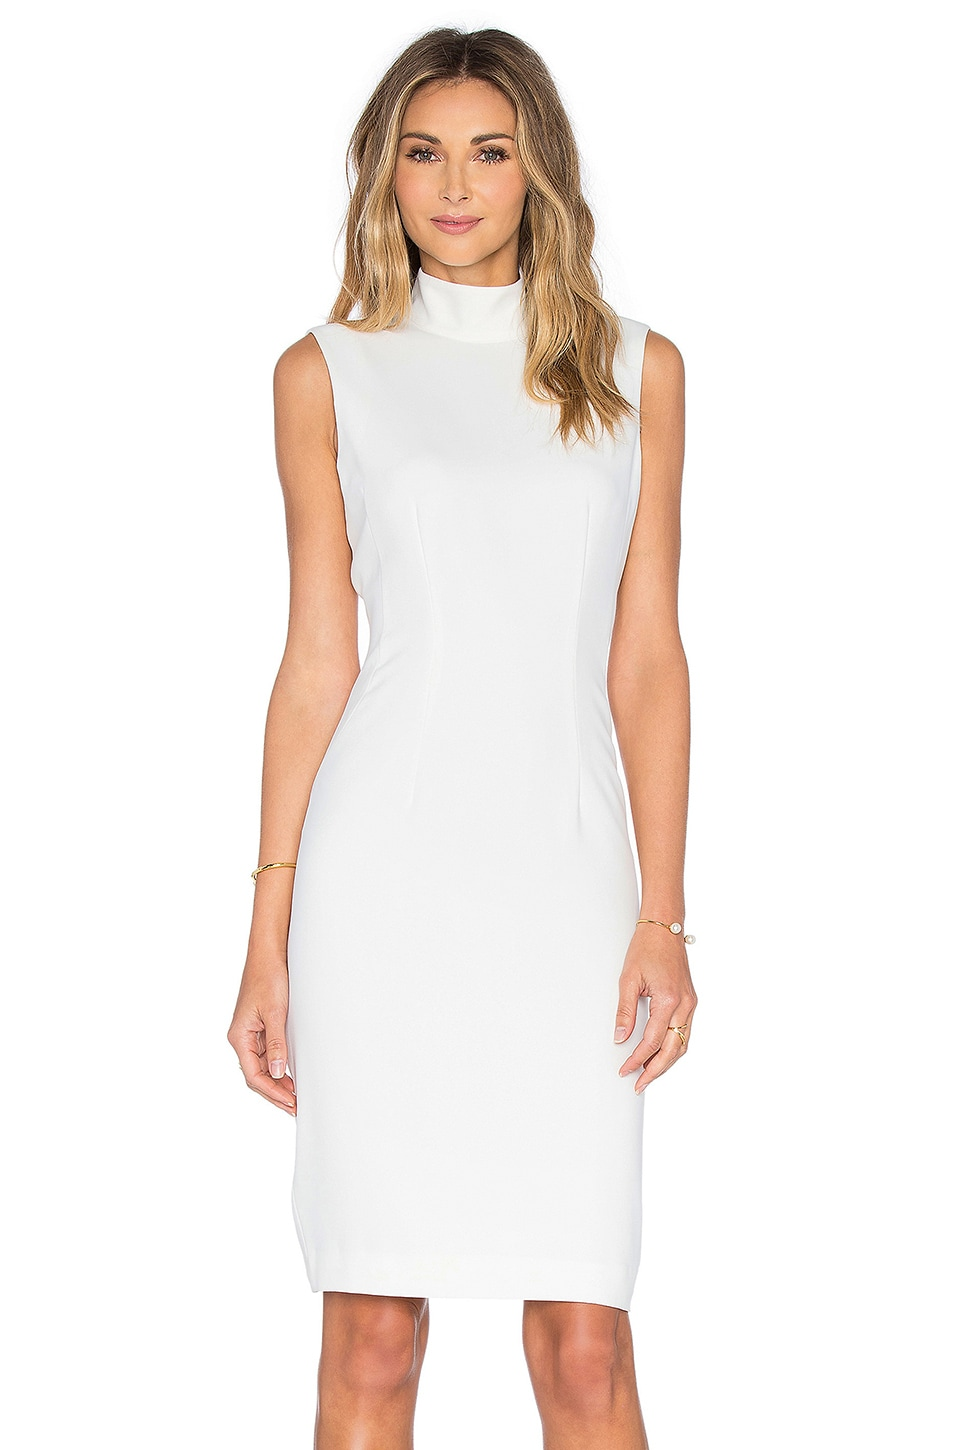 TY-LR The Elonis Dress in White